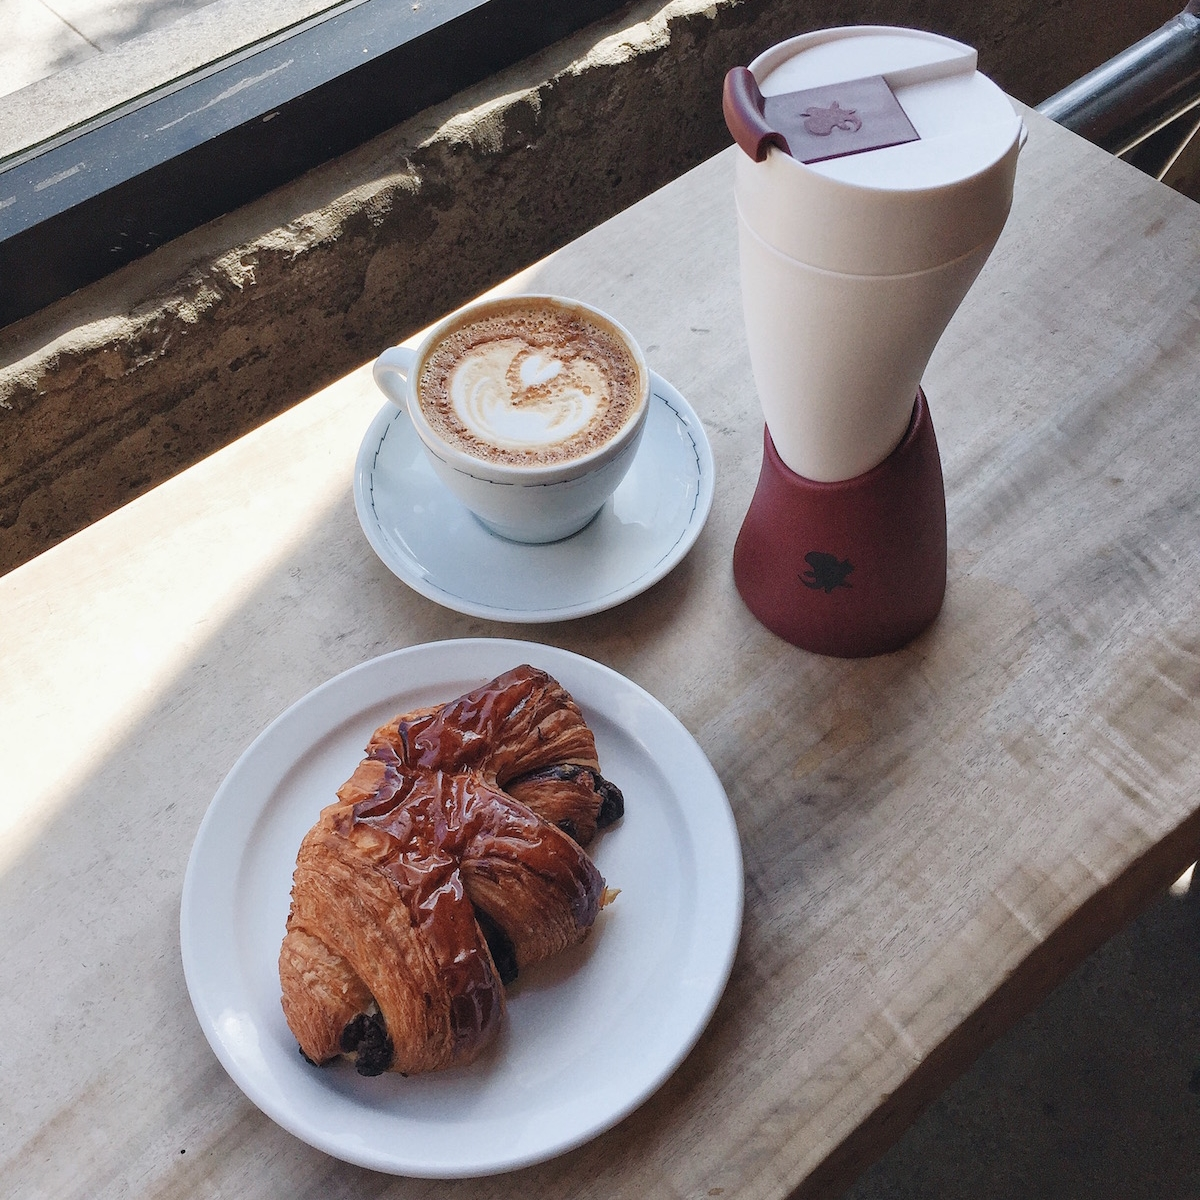 Breakfast:  Start your day at the local favorite,   Sightglass Coffee   with their signature soy latte + decadent chocolate croissant. The aroma from the roasting cacao beans alone will wake you up!